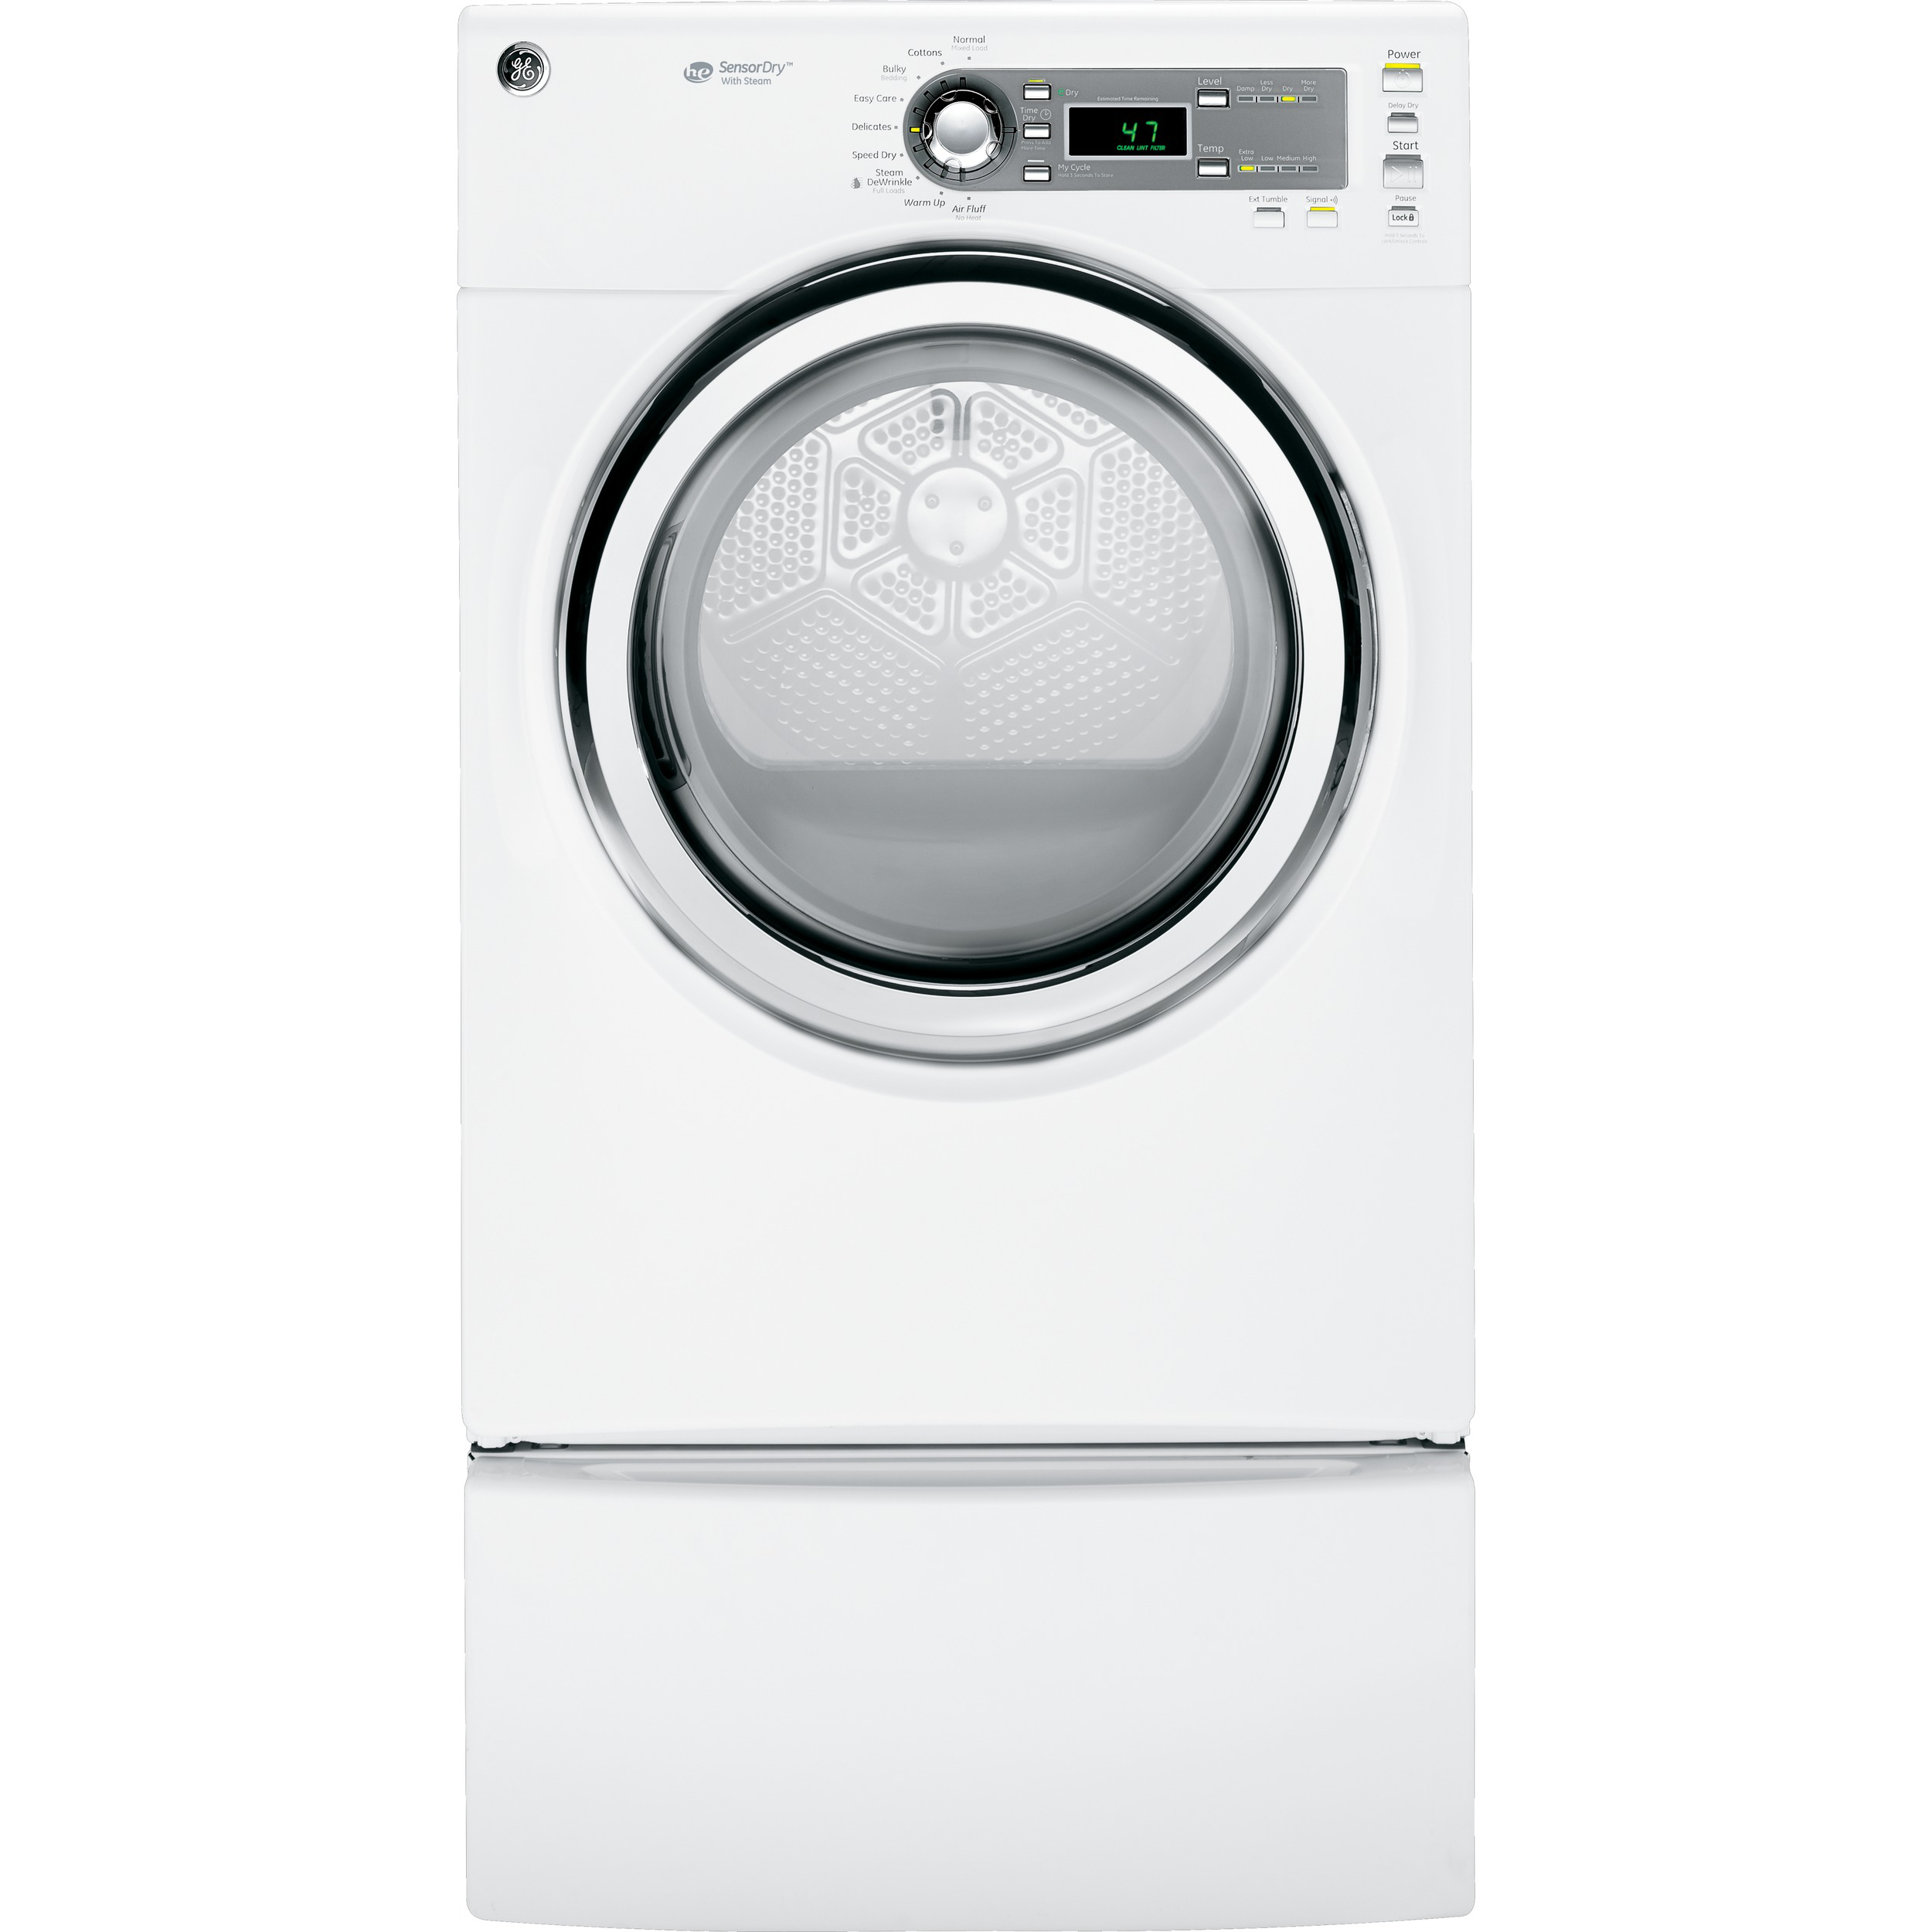 GE 7.0 cut. ft. Steam Gas Dryer - White